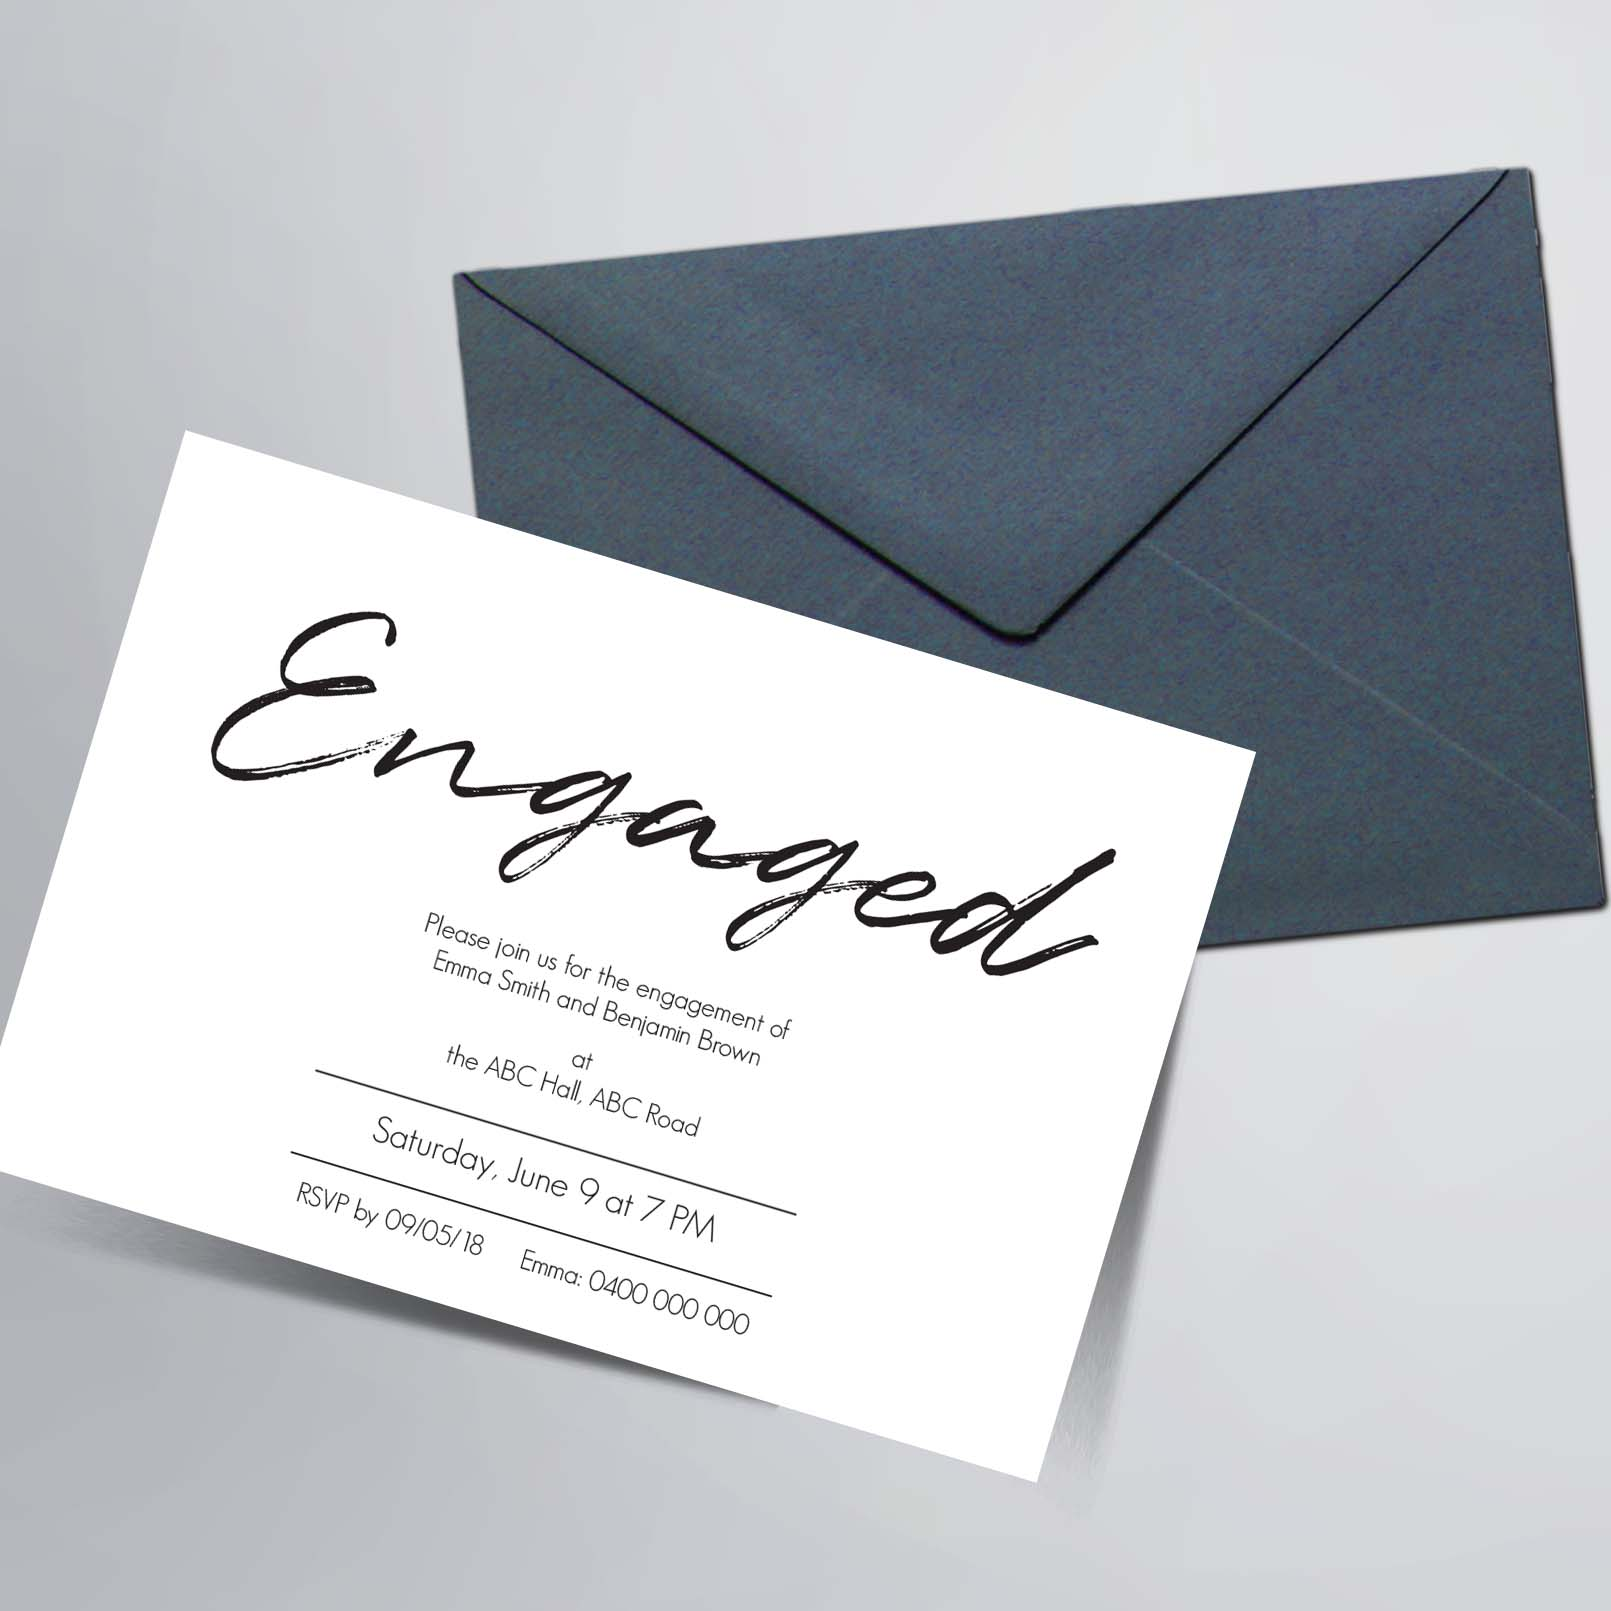 Engagement Party Invitations - graphic designer melbourne